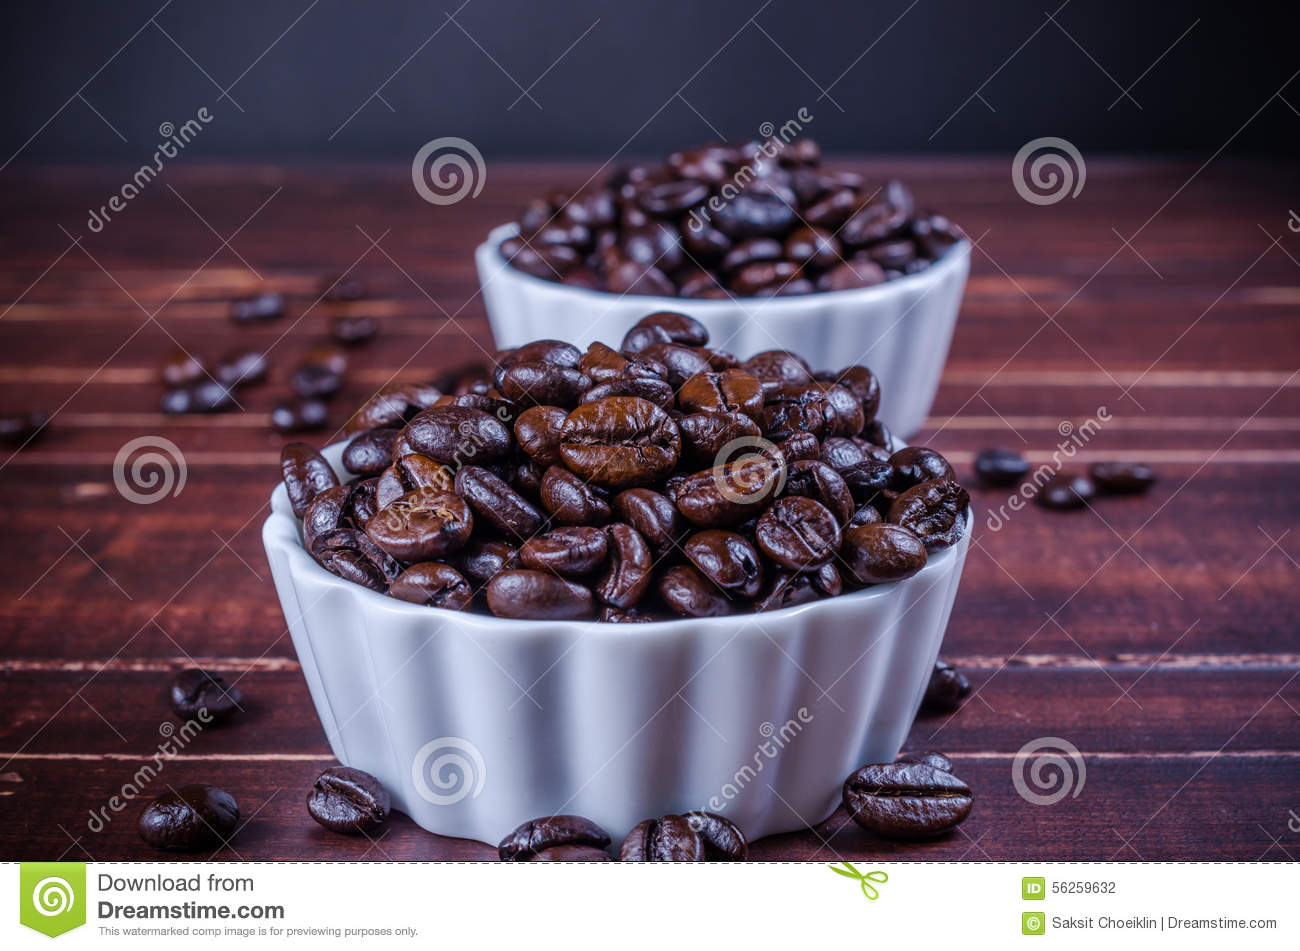 Roasted coffee beans in white bowl porcelain on wooden backg